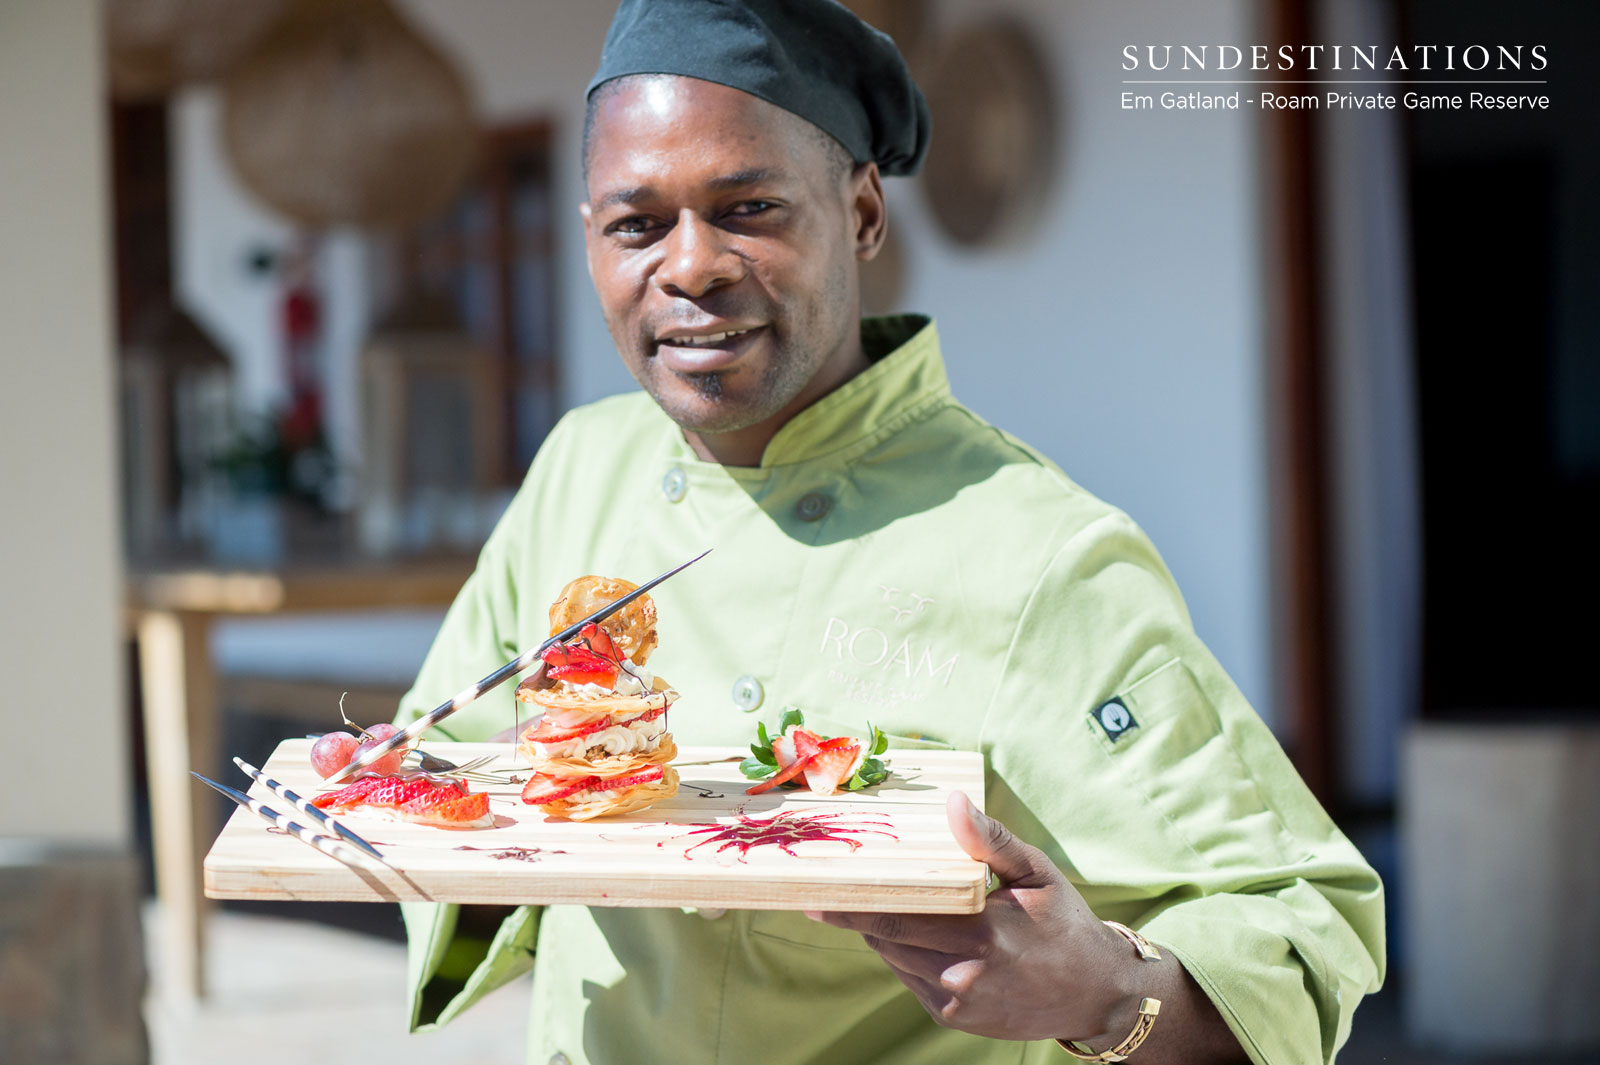 Roam Safari Lodge Chef